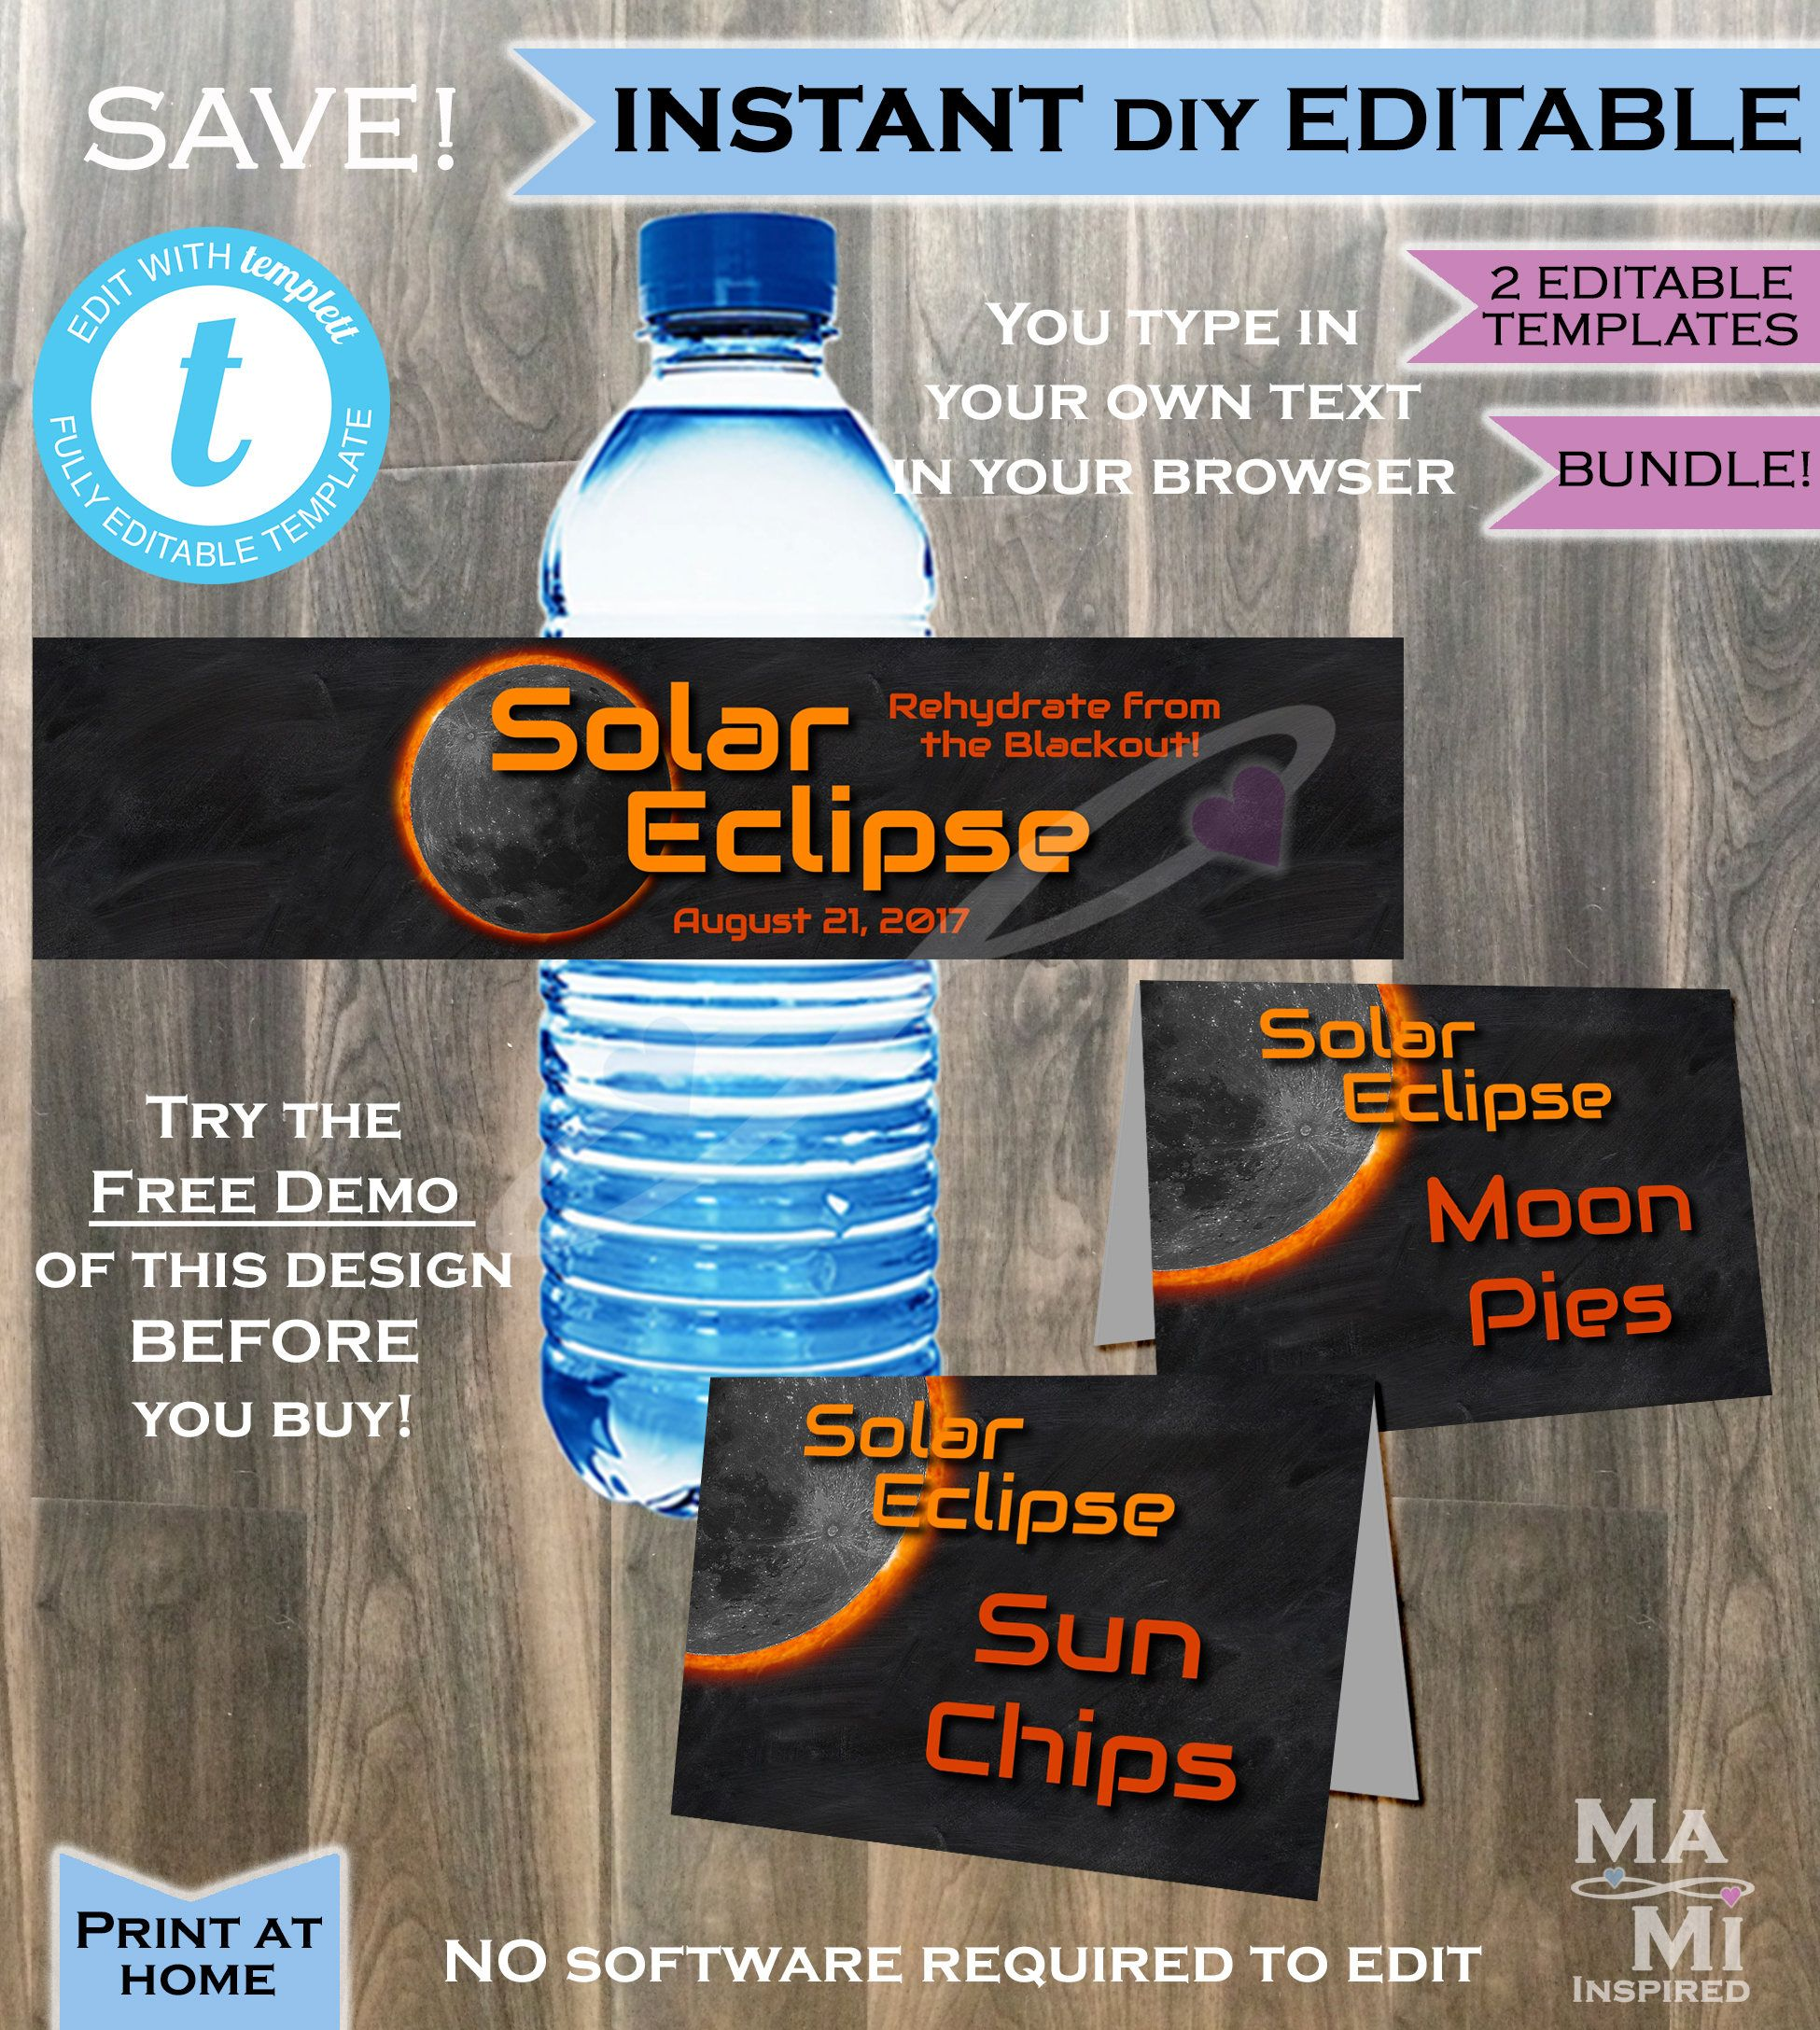 Solar Eclipse Water Bottle Labels Amp Food Tents 2 In 1